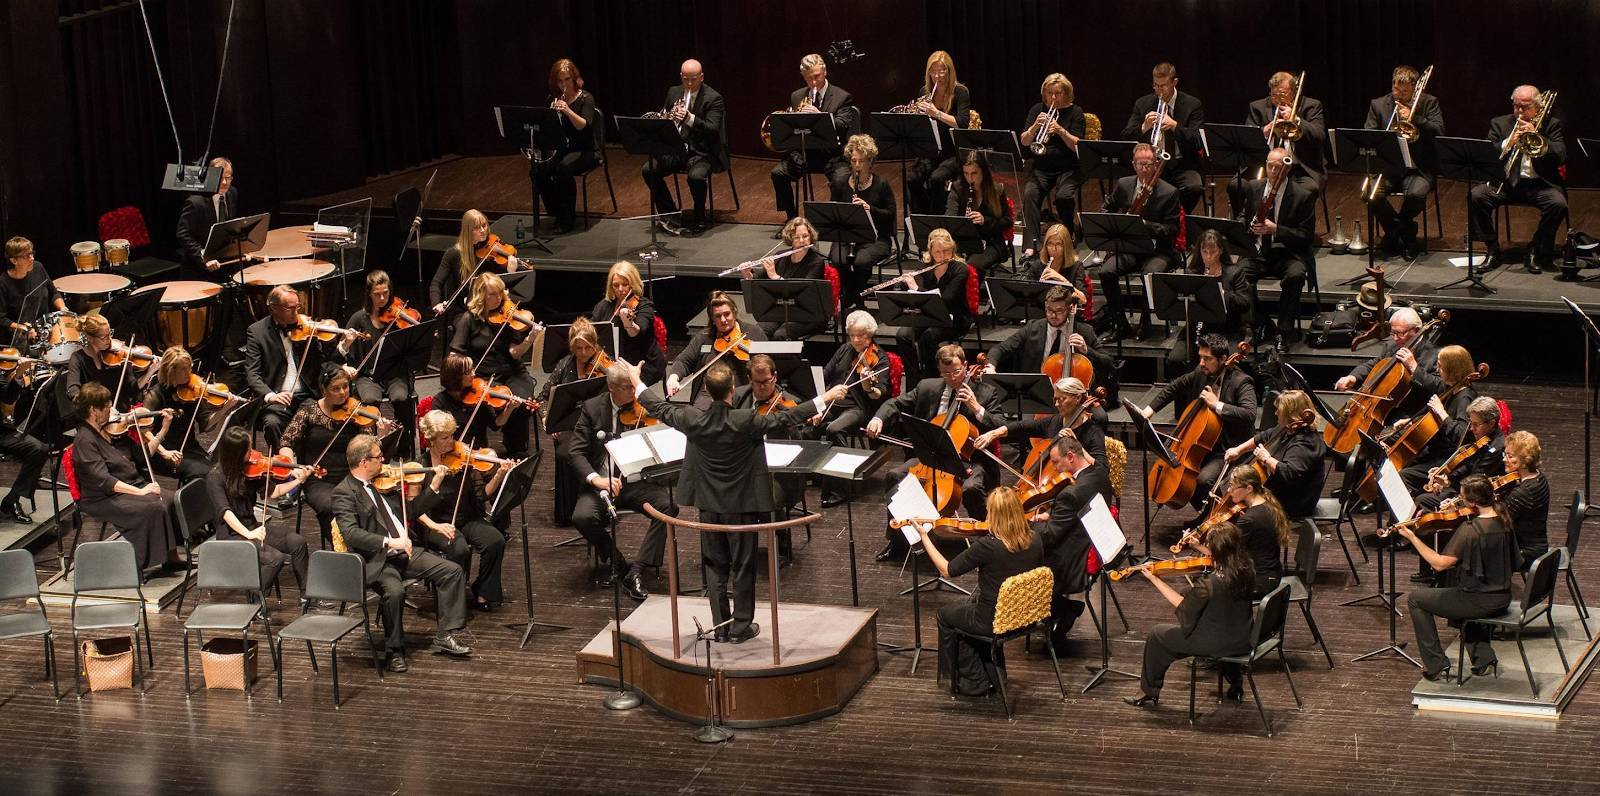 The Springfield Symphony Orchestra